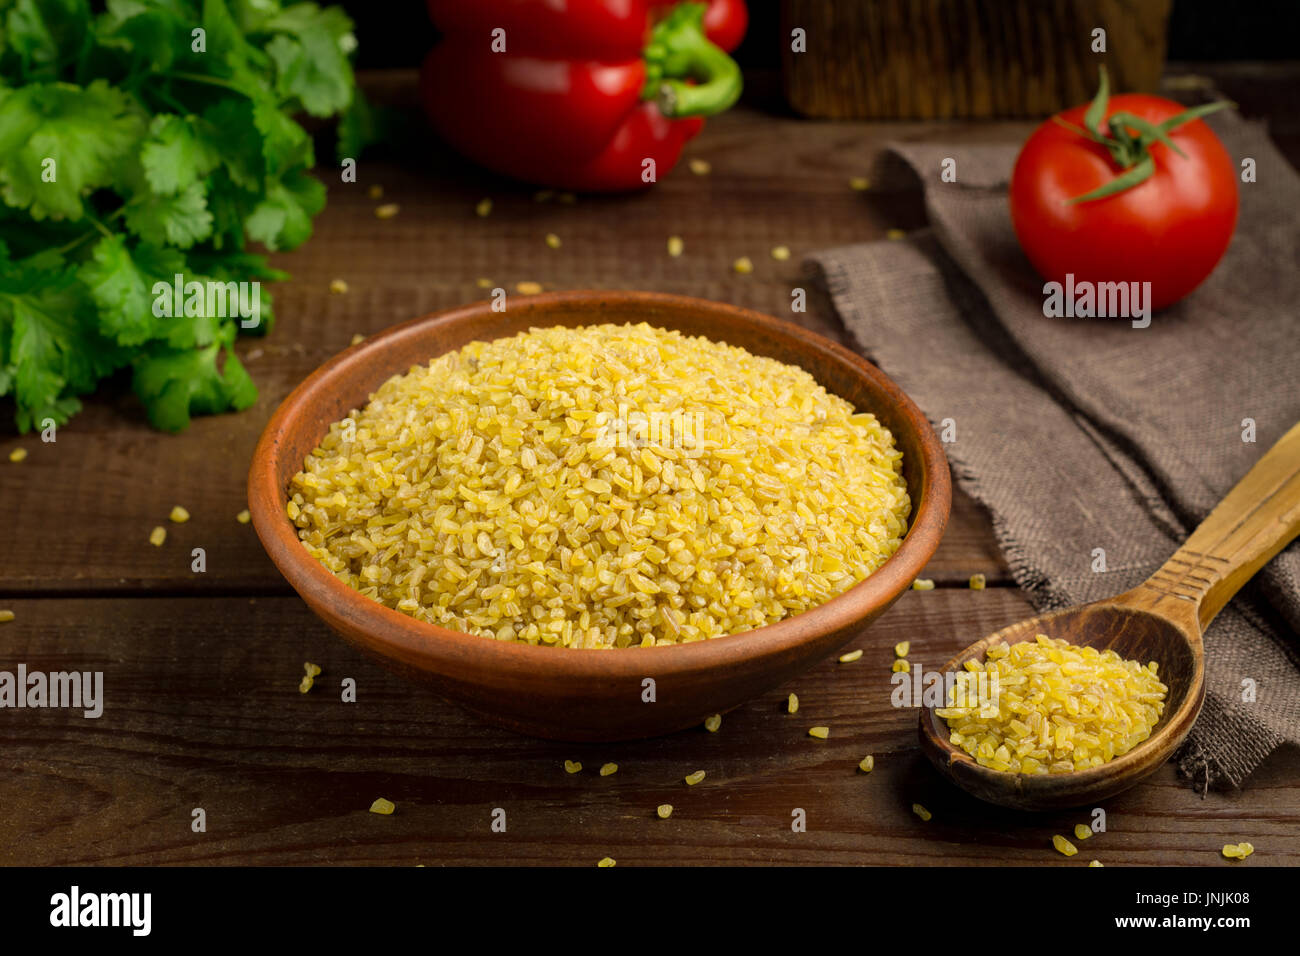 Bulgur Gluten Free Wheat Grains in bowl on wooden table - Stock Image